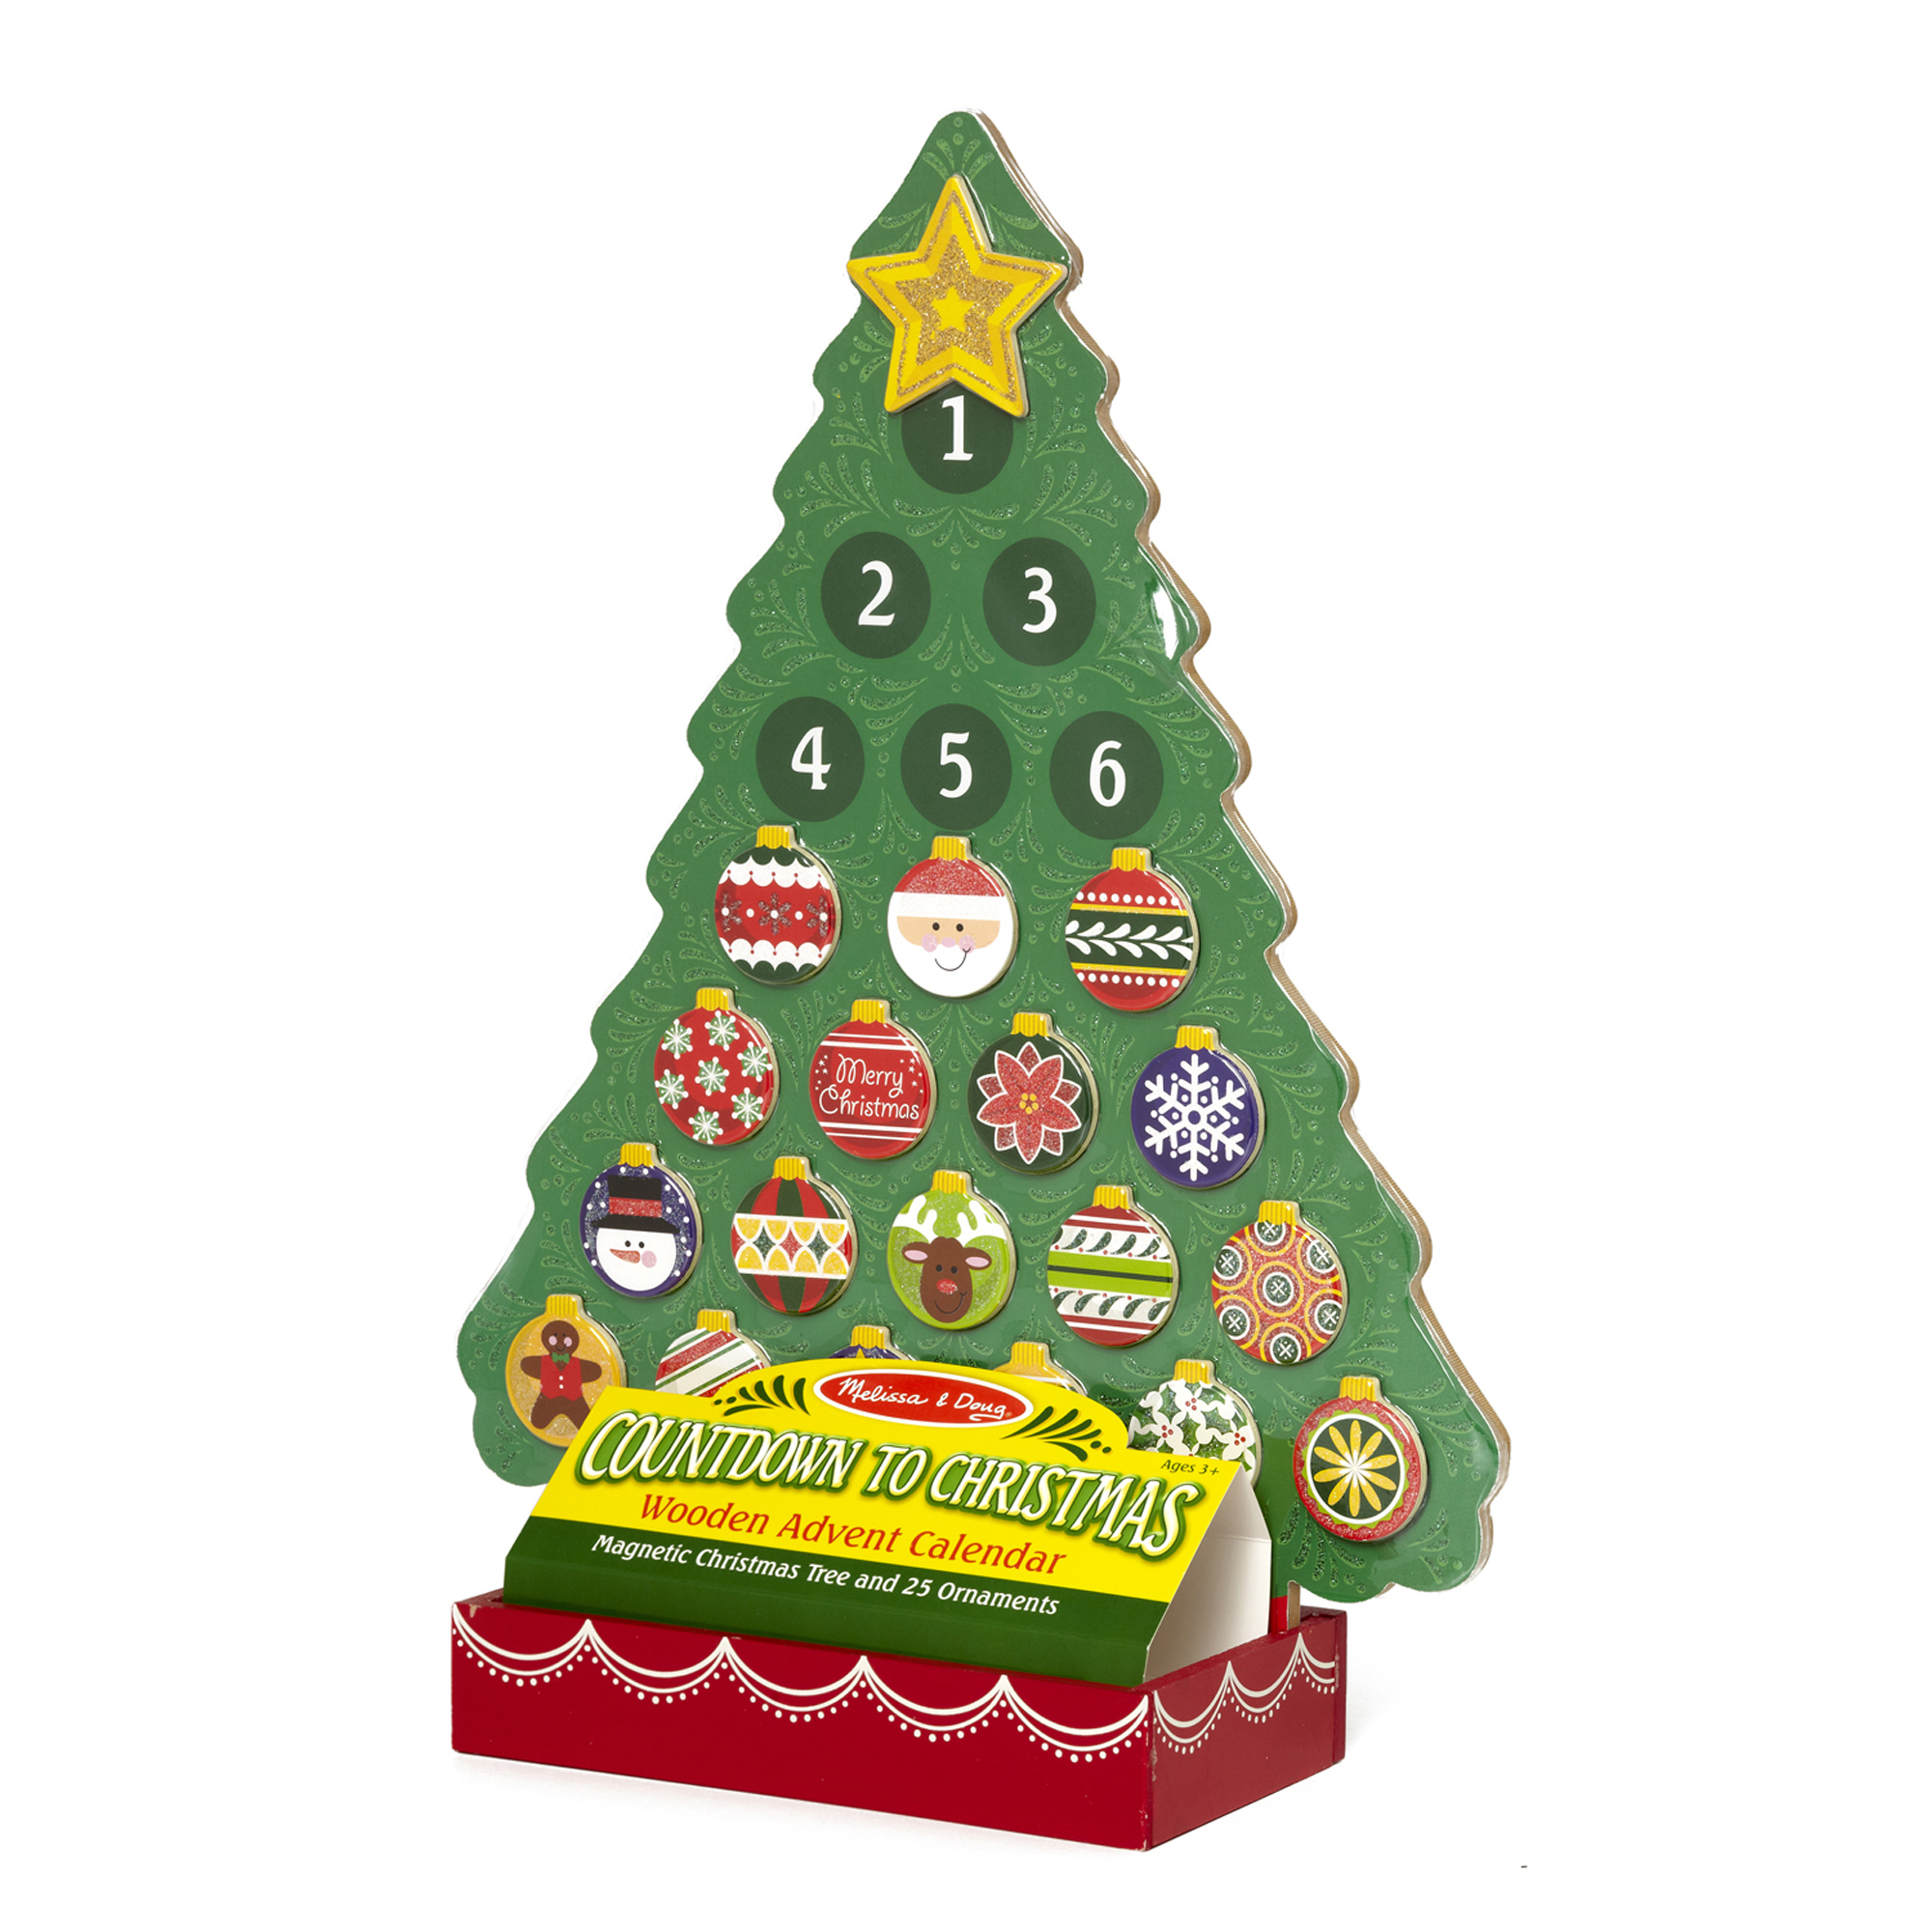 Countdown to Christmas Wooden Advent Calendar, Magnetic Tree, 25 Magnets